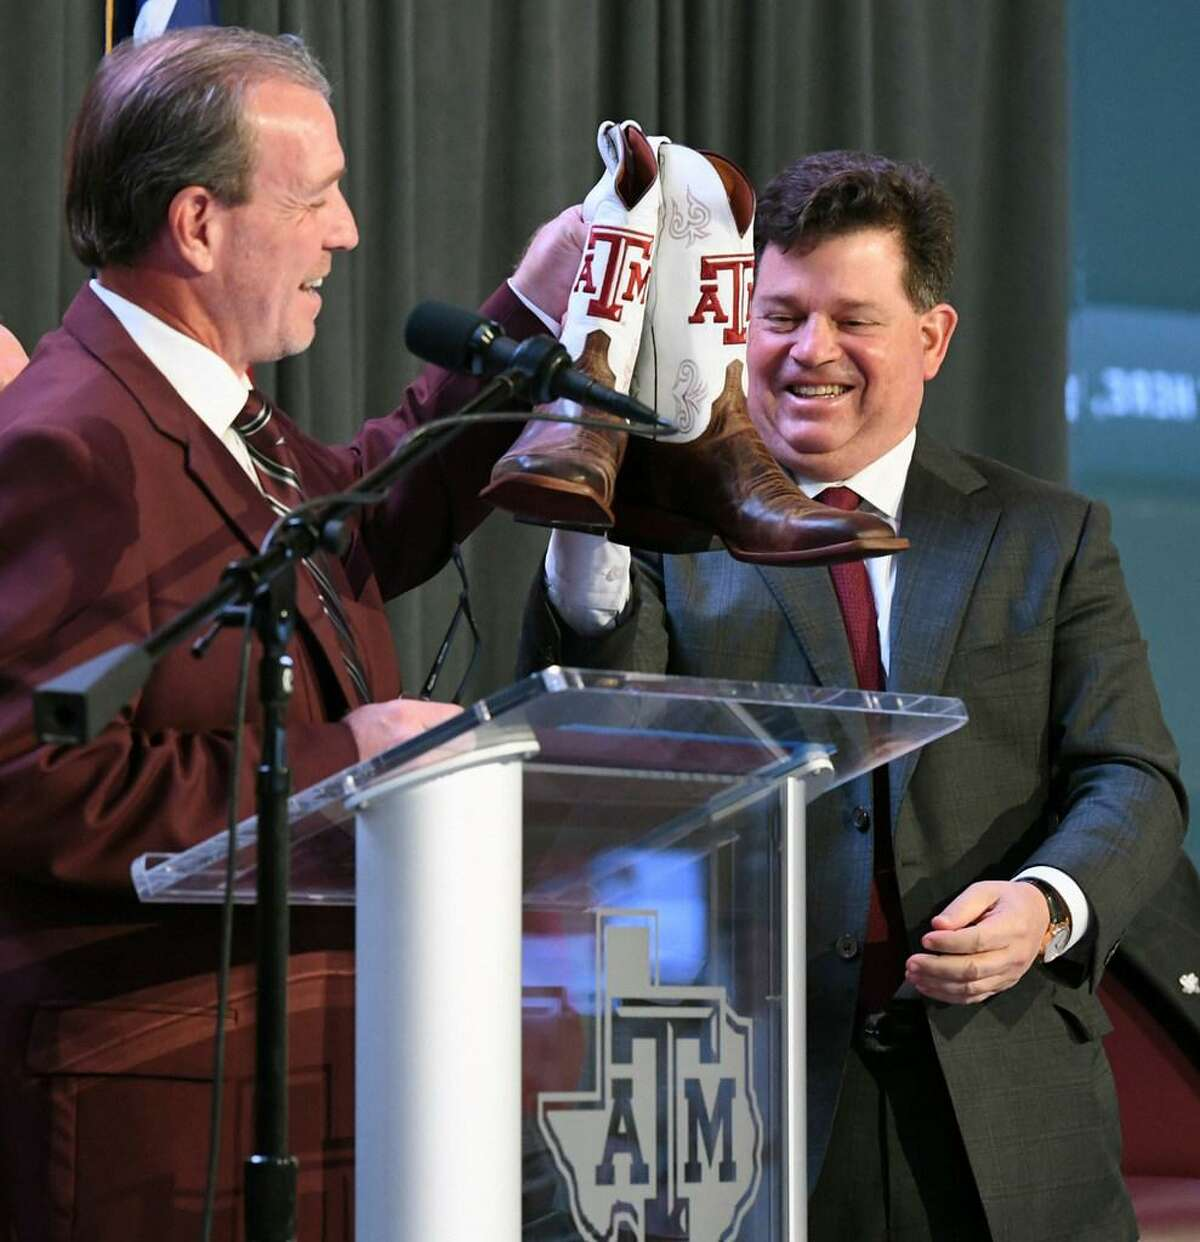 Jimbo Fisher, left, holds up a pair of Texas A&M cowboy boots next to Texas A&M athletic director Scott Wooward after being introduced as the Aggies' new NCAA college football coach Monday, Dec. 4, 2017, in College Station, Texas.